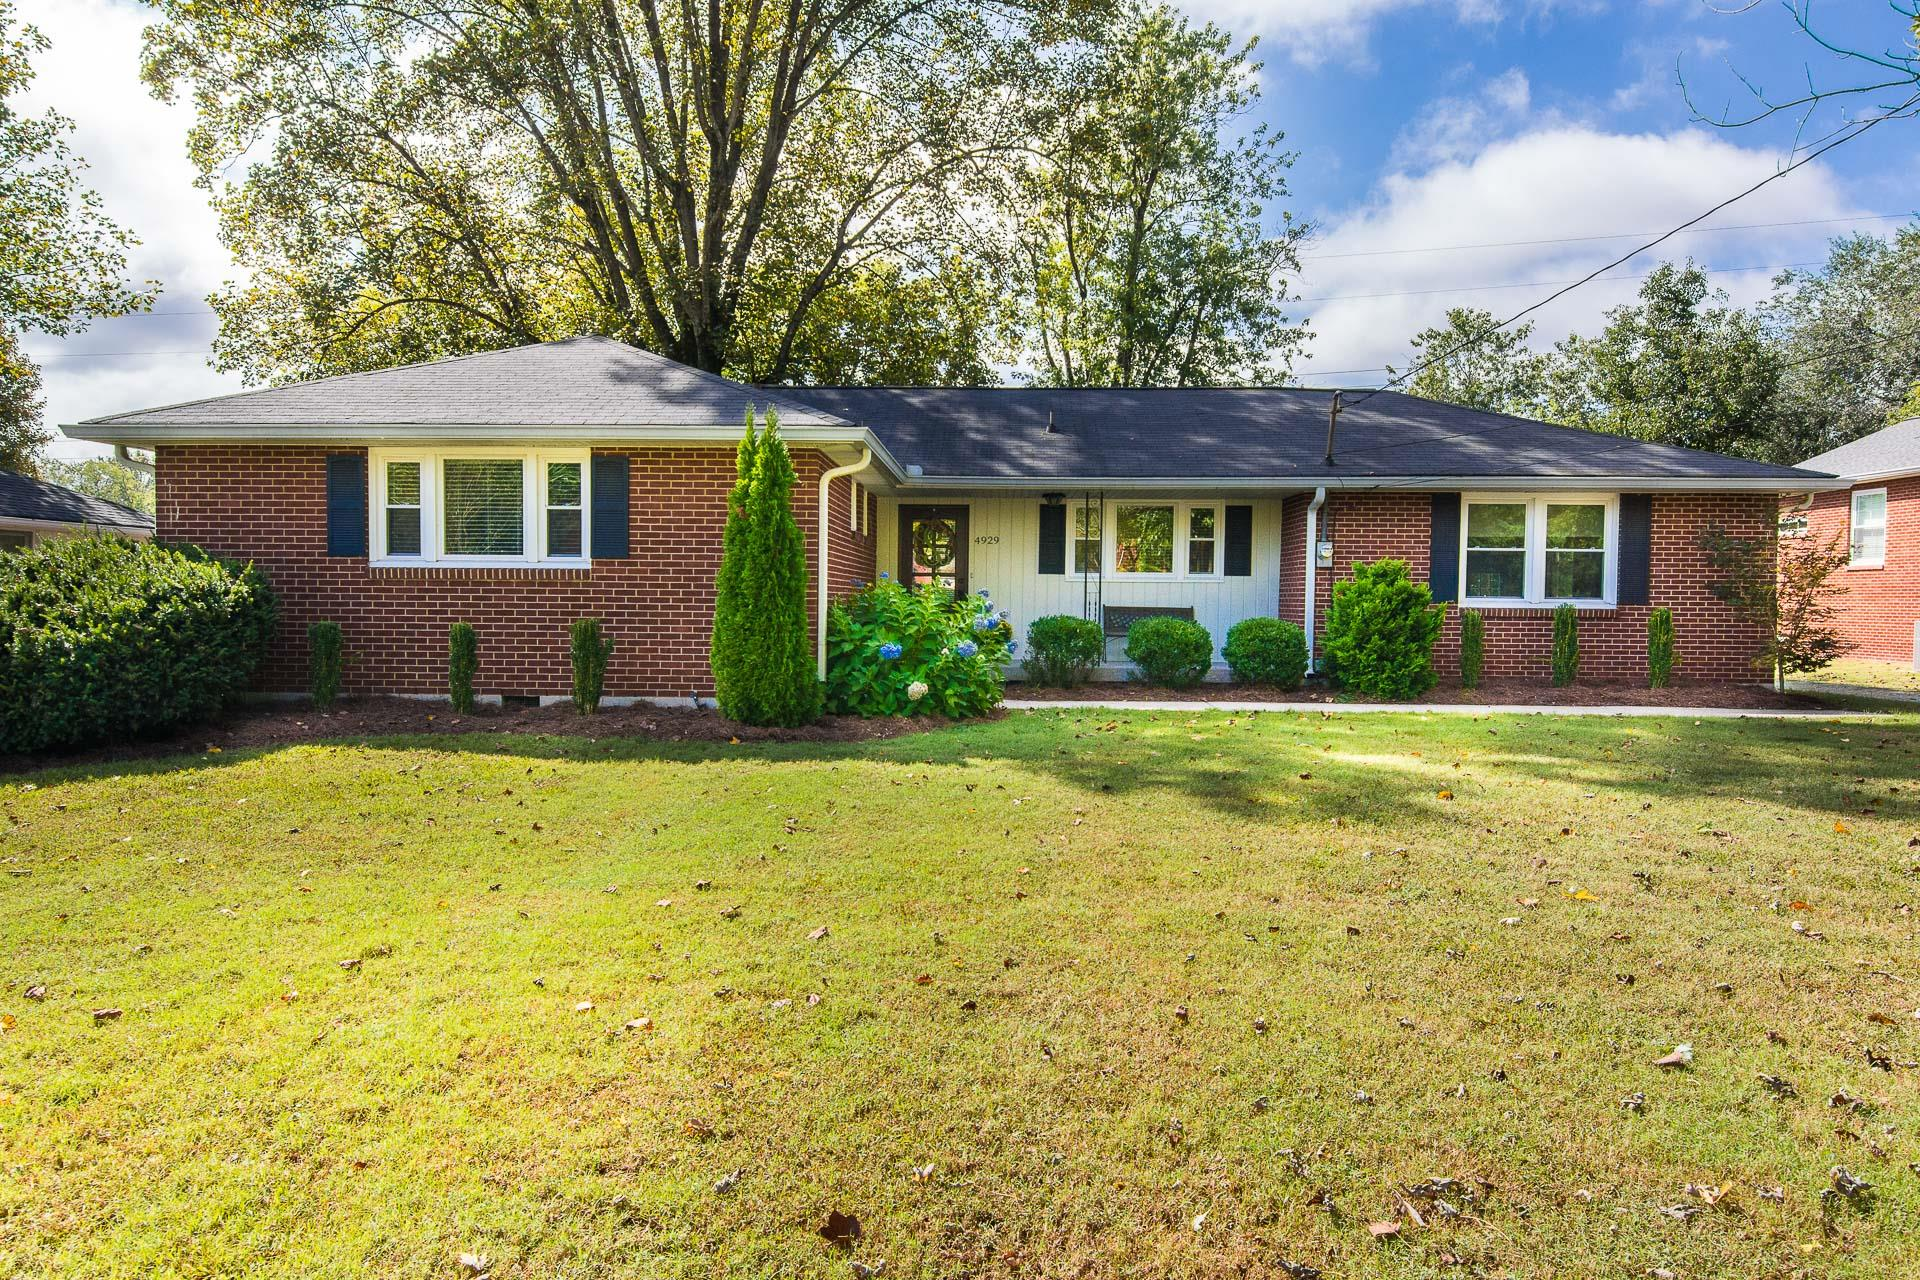 4929 Danby Dr, Crieve Hill, Tennessee